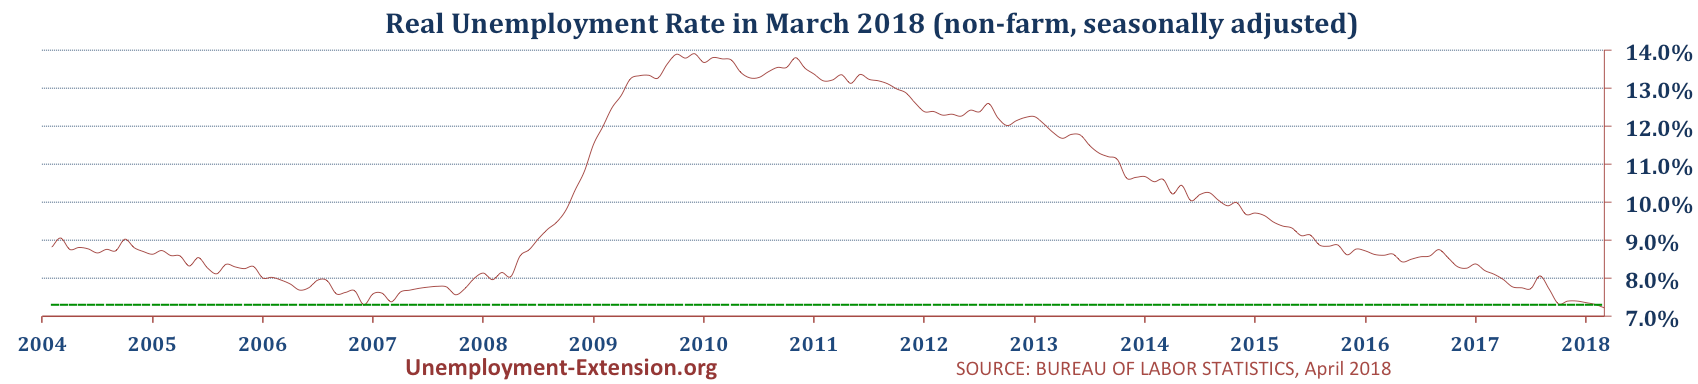 US real national Unemployment Rate in February of 2018 is 7.3% (7.3% in February of 2018, 7.4% in January of 2018, and 7.4% in December of 2017).